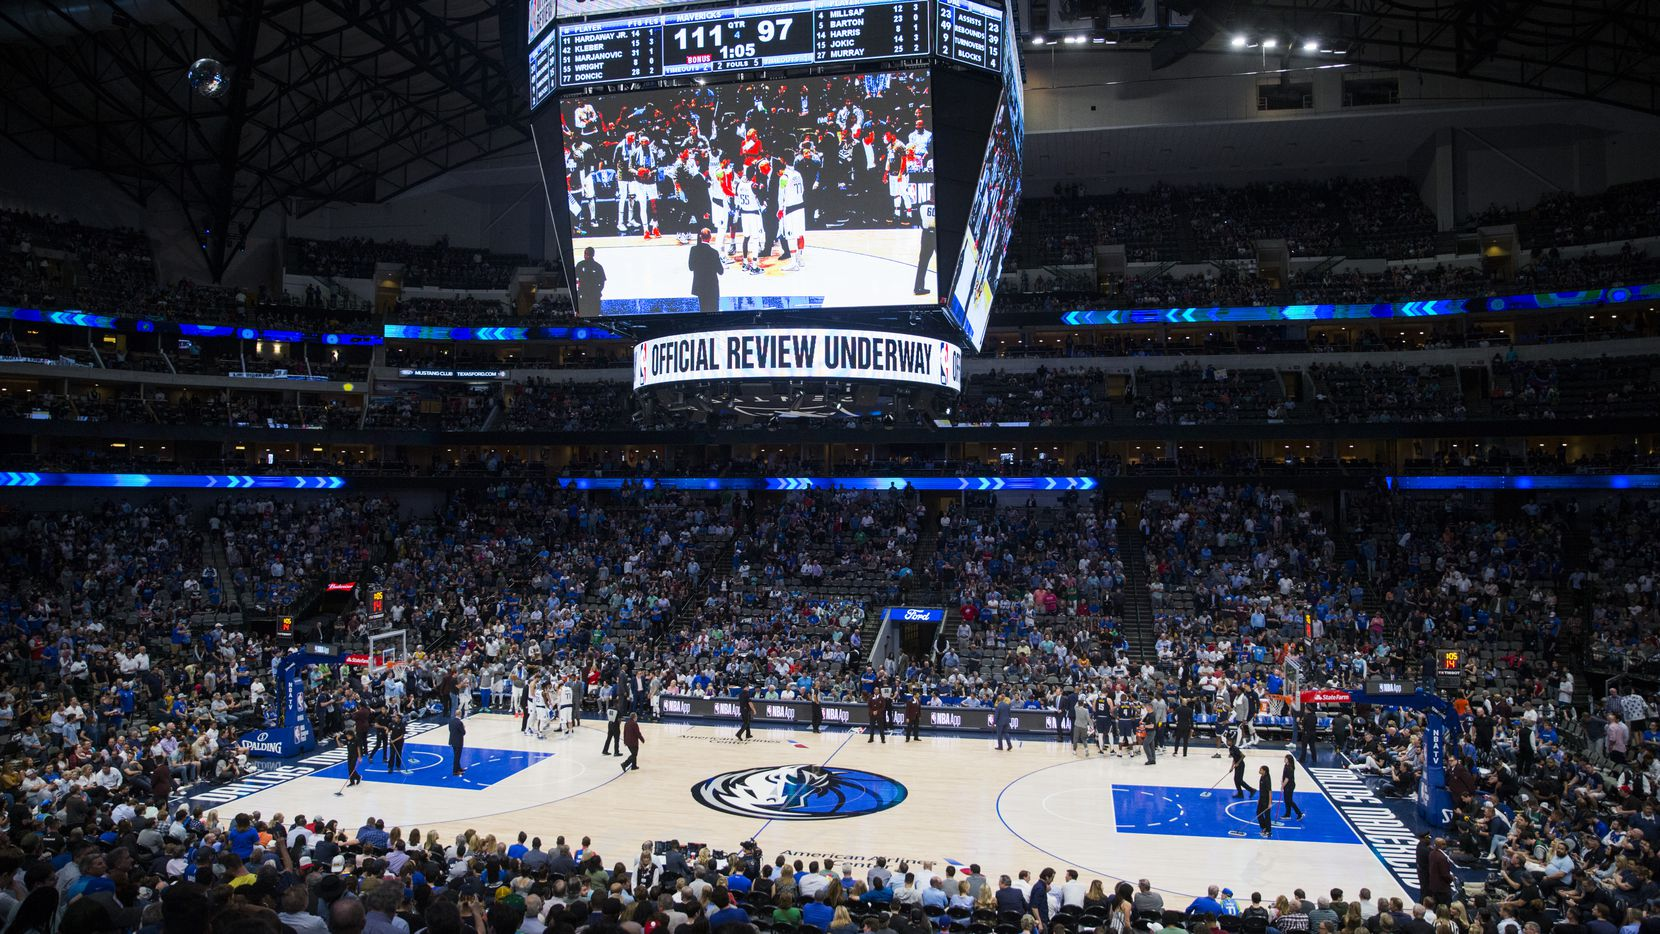 A mostly full arena in the fourth quarter of an NBA game between the Dallas Mavericks and the Denver Nuggets on Wednesday, March 11, 2020 at American Airlines Center in Dallas. During the game, the NBA suspended all games due to the spread of the new coronavirus. (Ashley Landis/The Dallas Morning News)